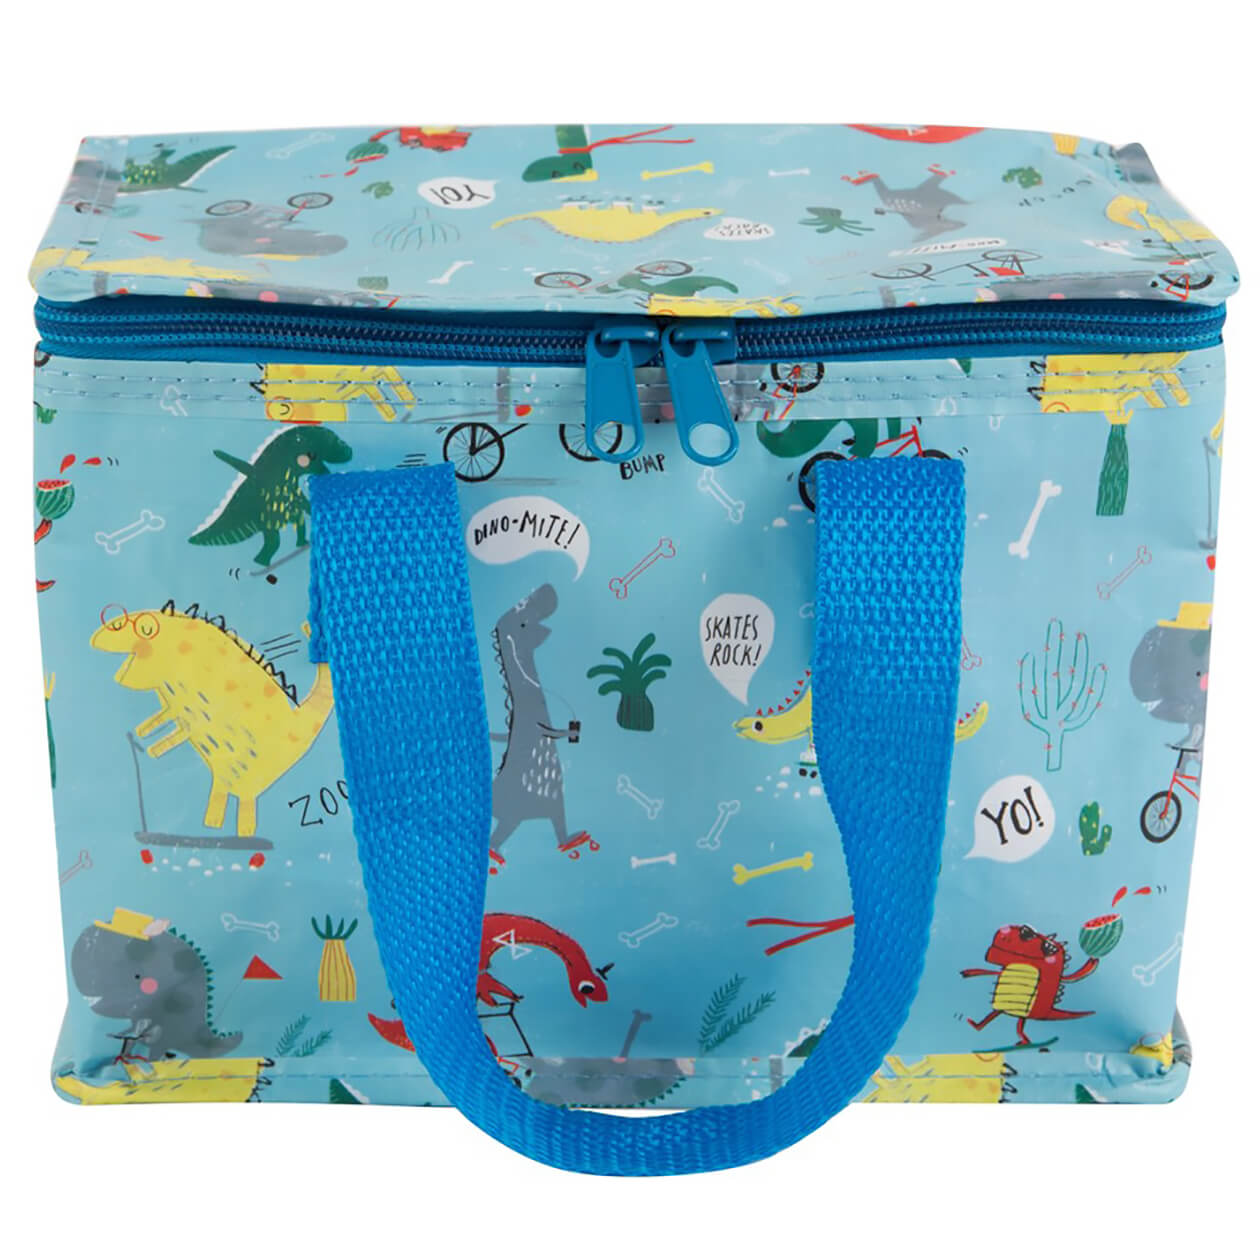 Sass & Belle Dino Skate Park Lunch Bag